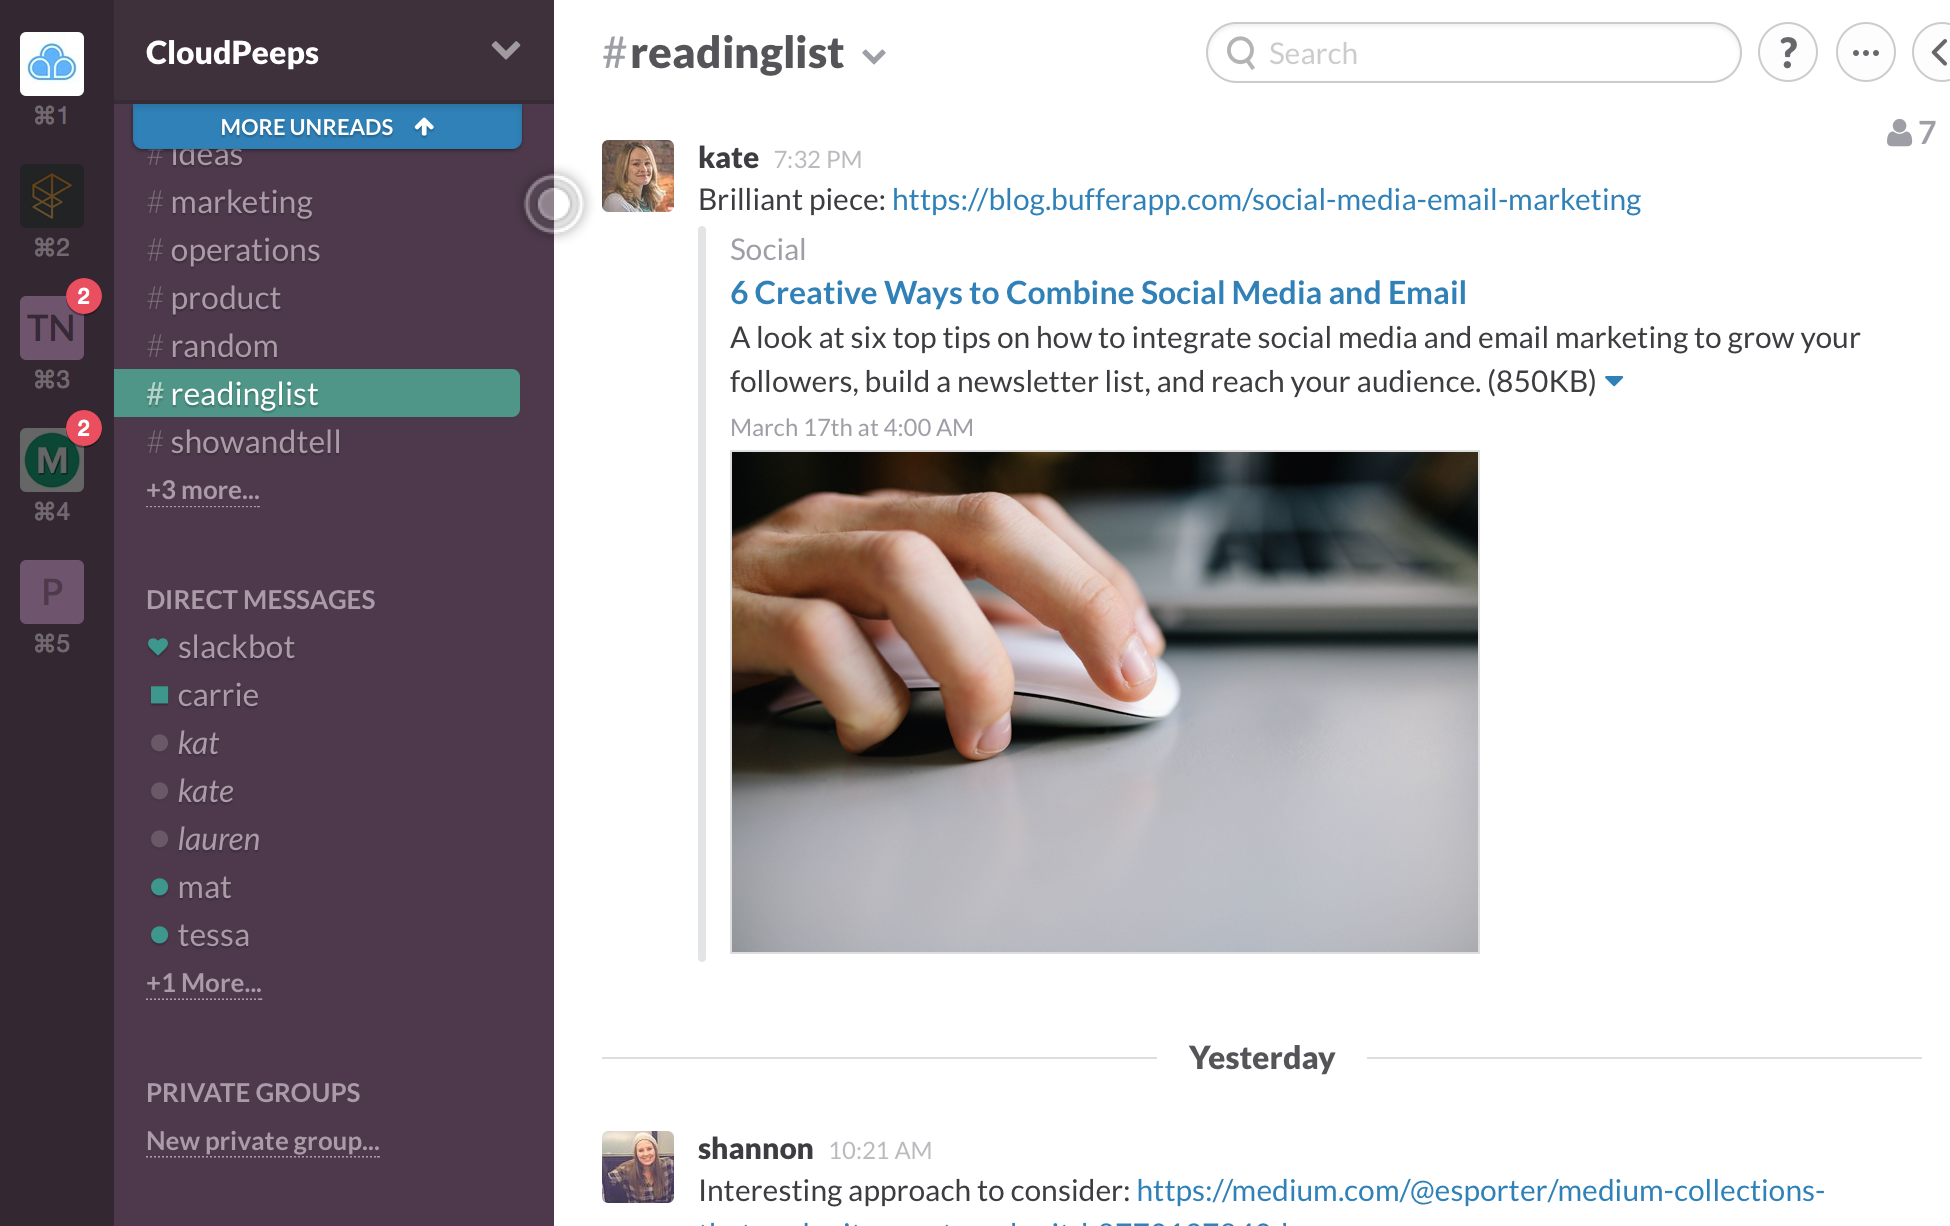 reading list channel on Slack